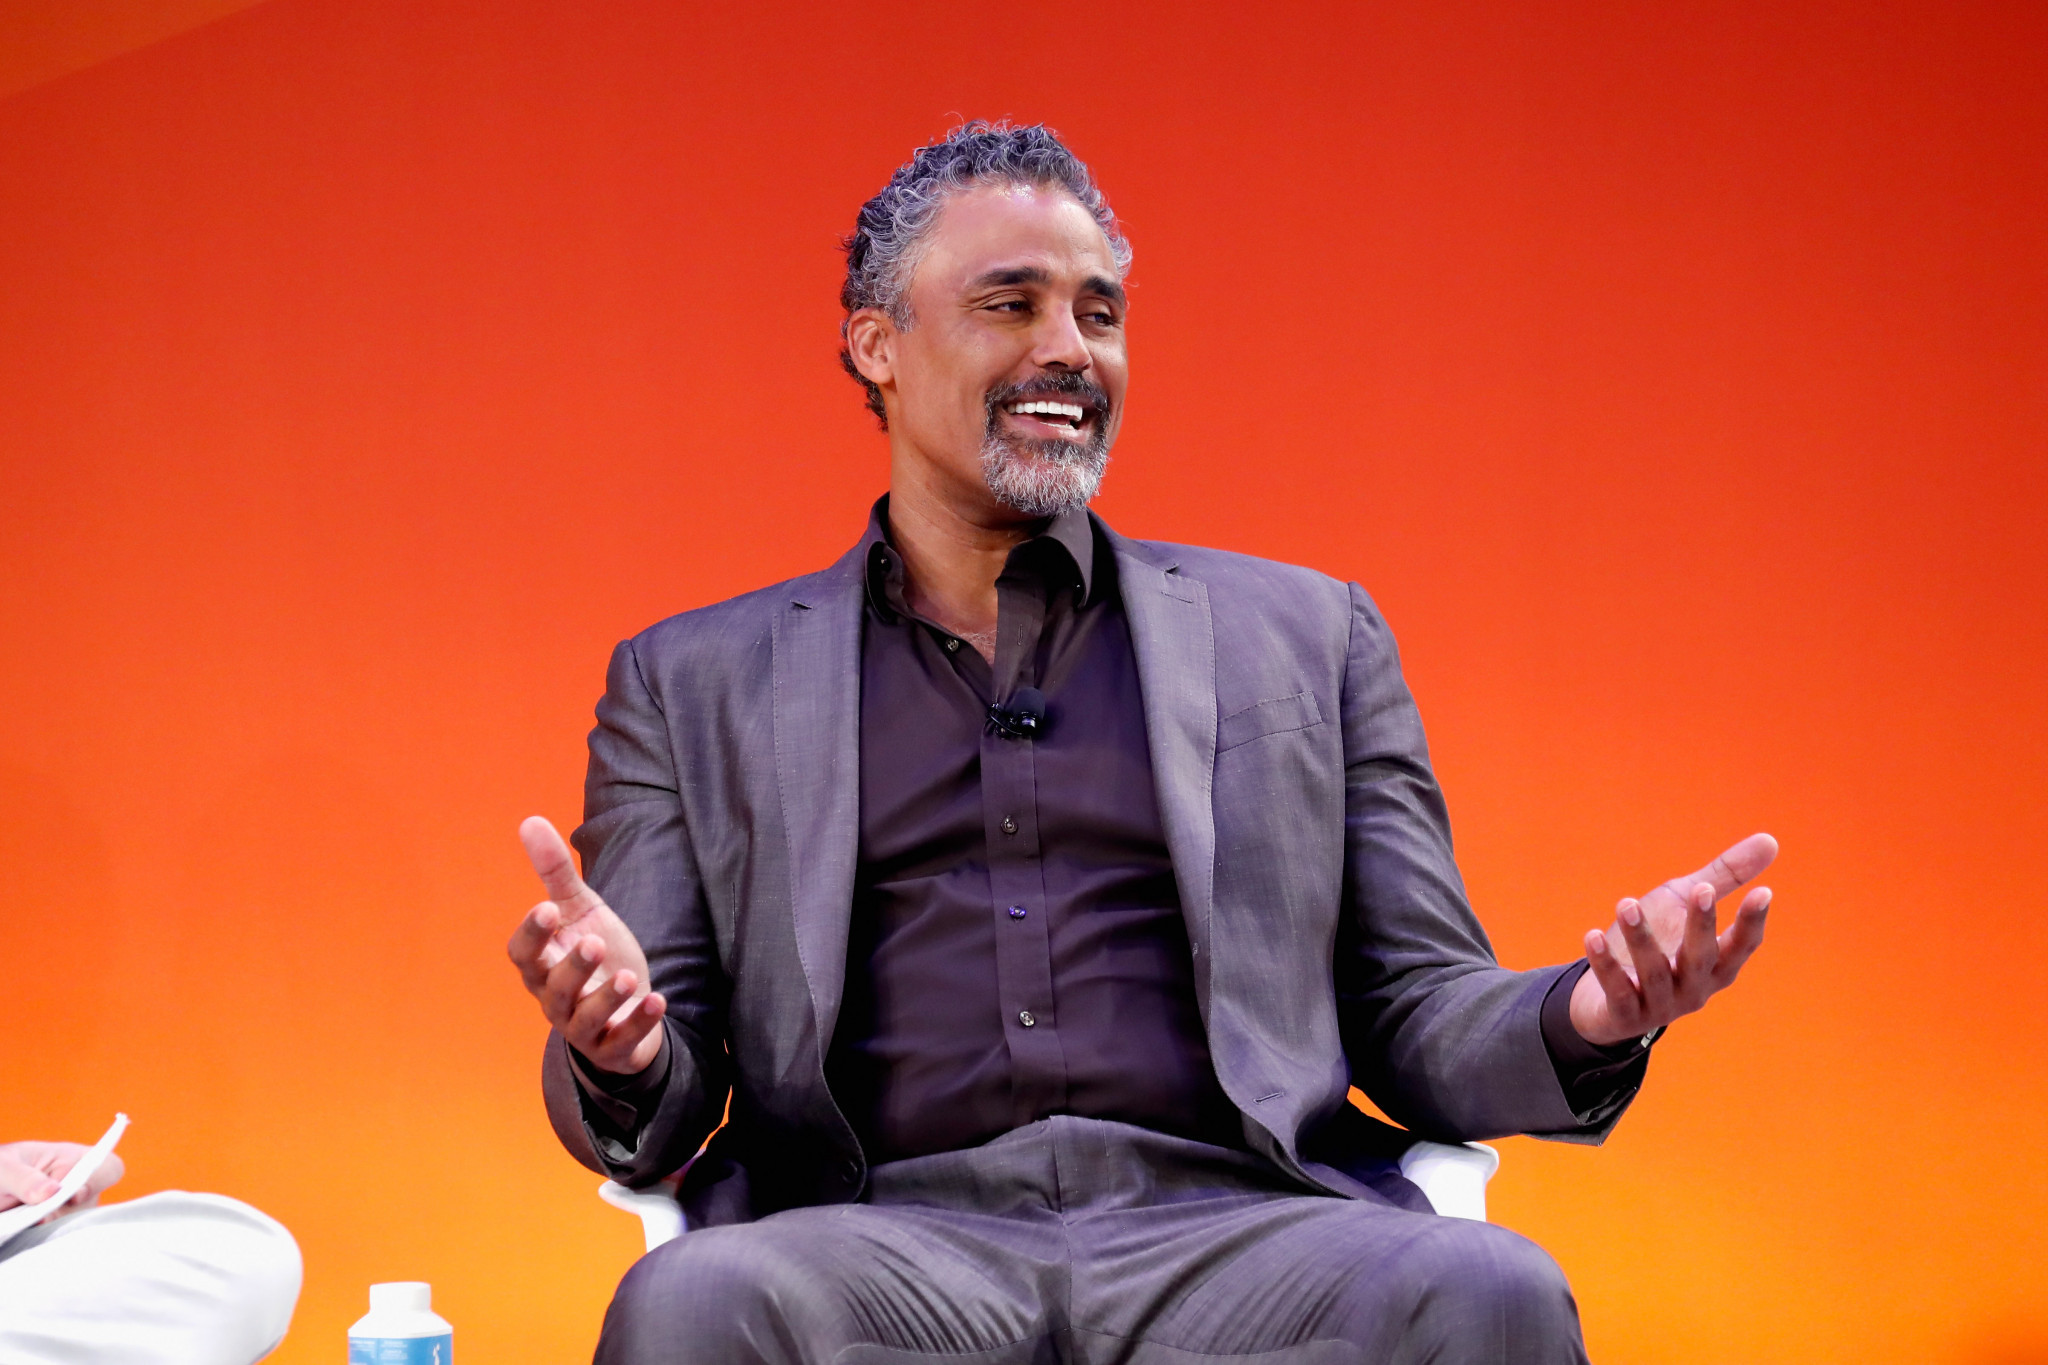 Esports franchise owner Rick Fox, whose mother took part in the 1964 Olympics, will chair the IOC's esports forum in Lausanne ©Getty Images